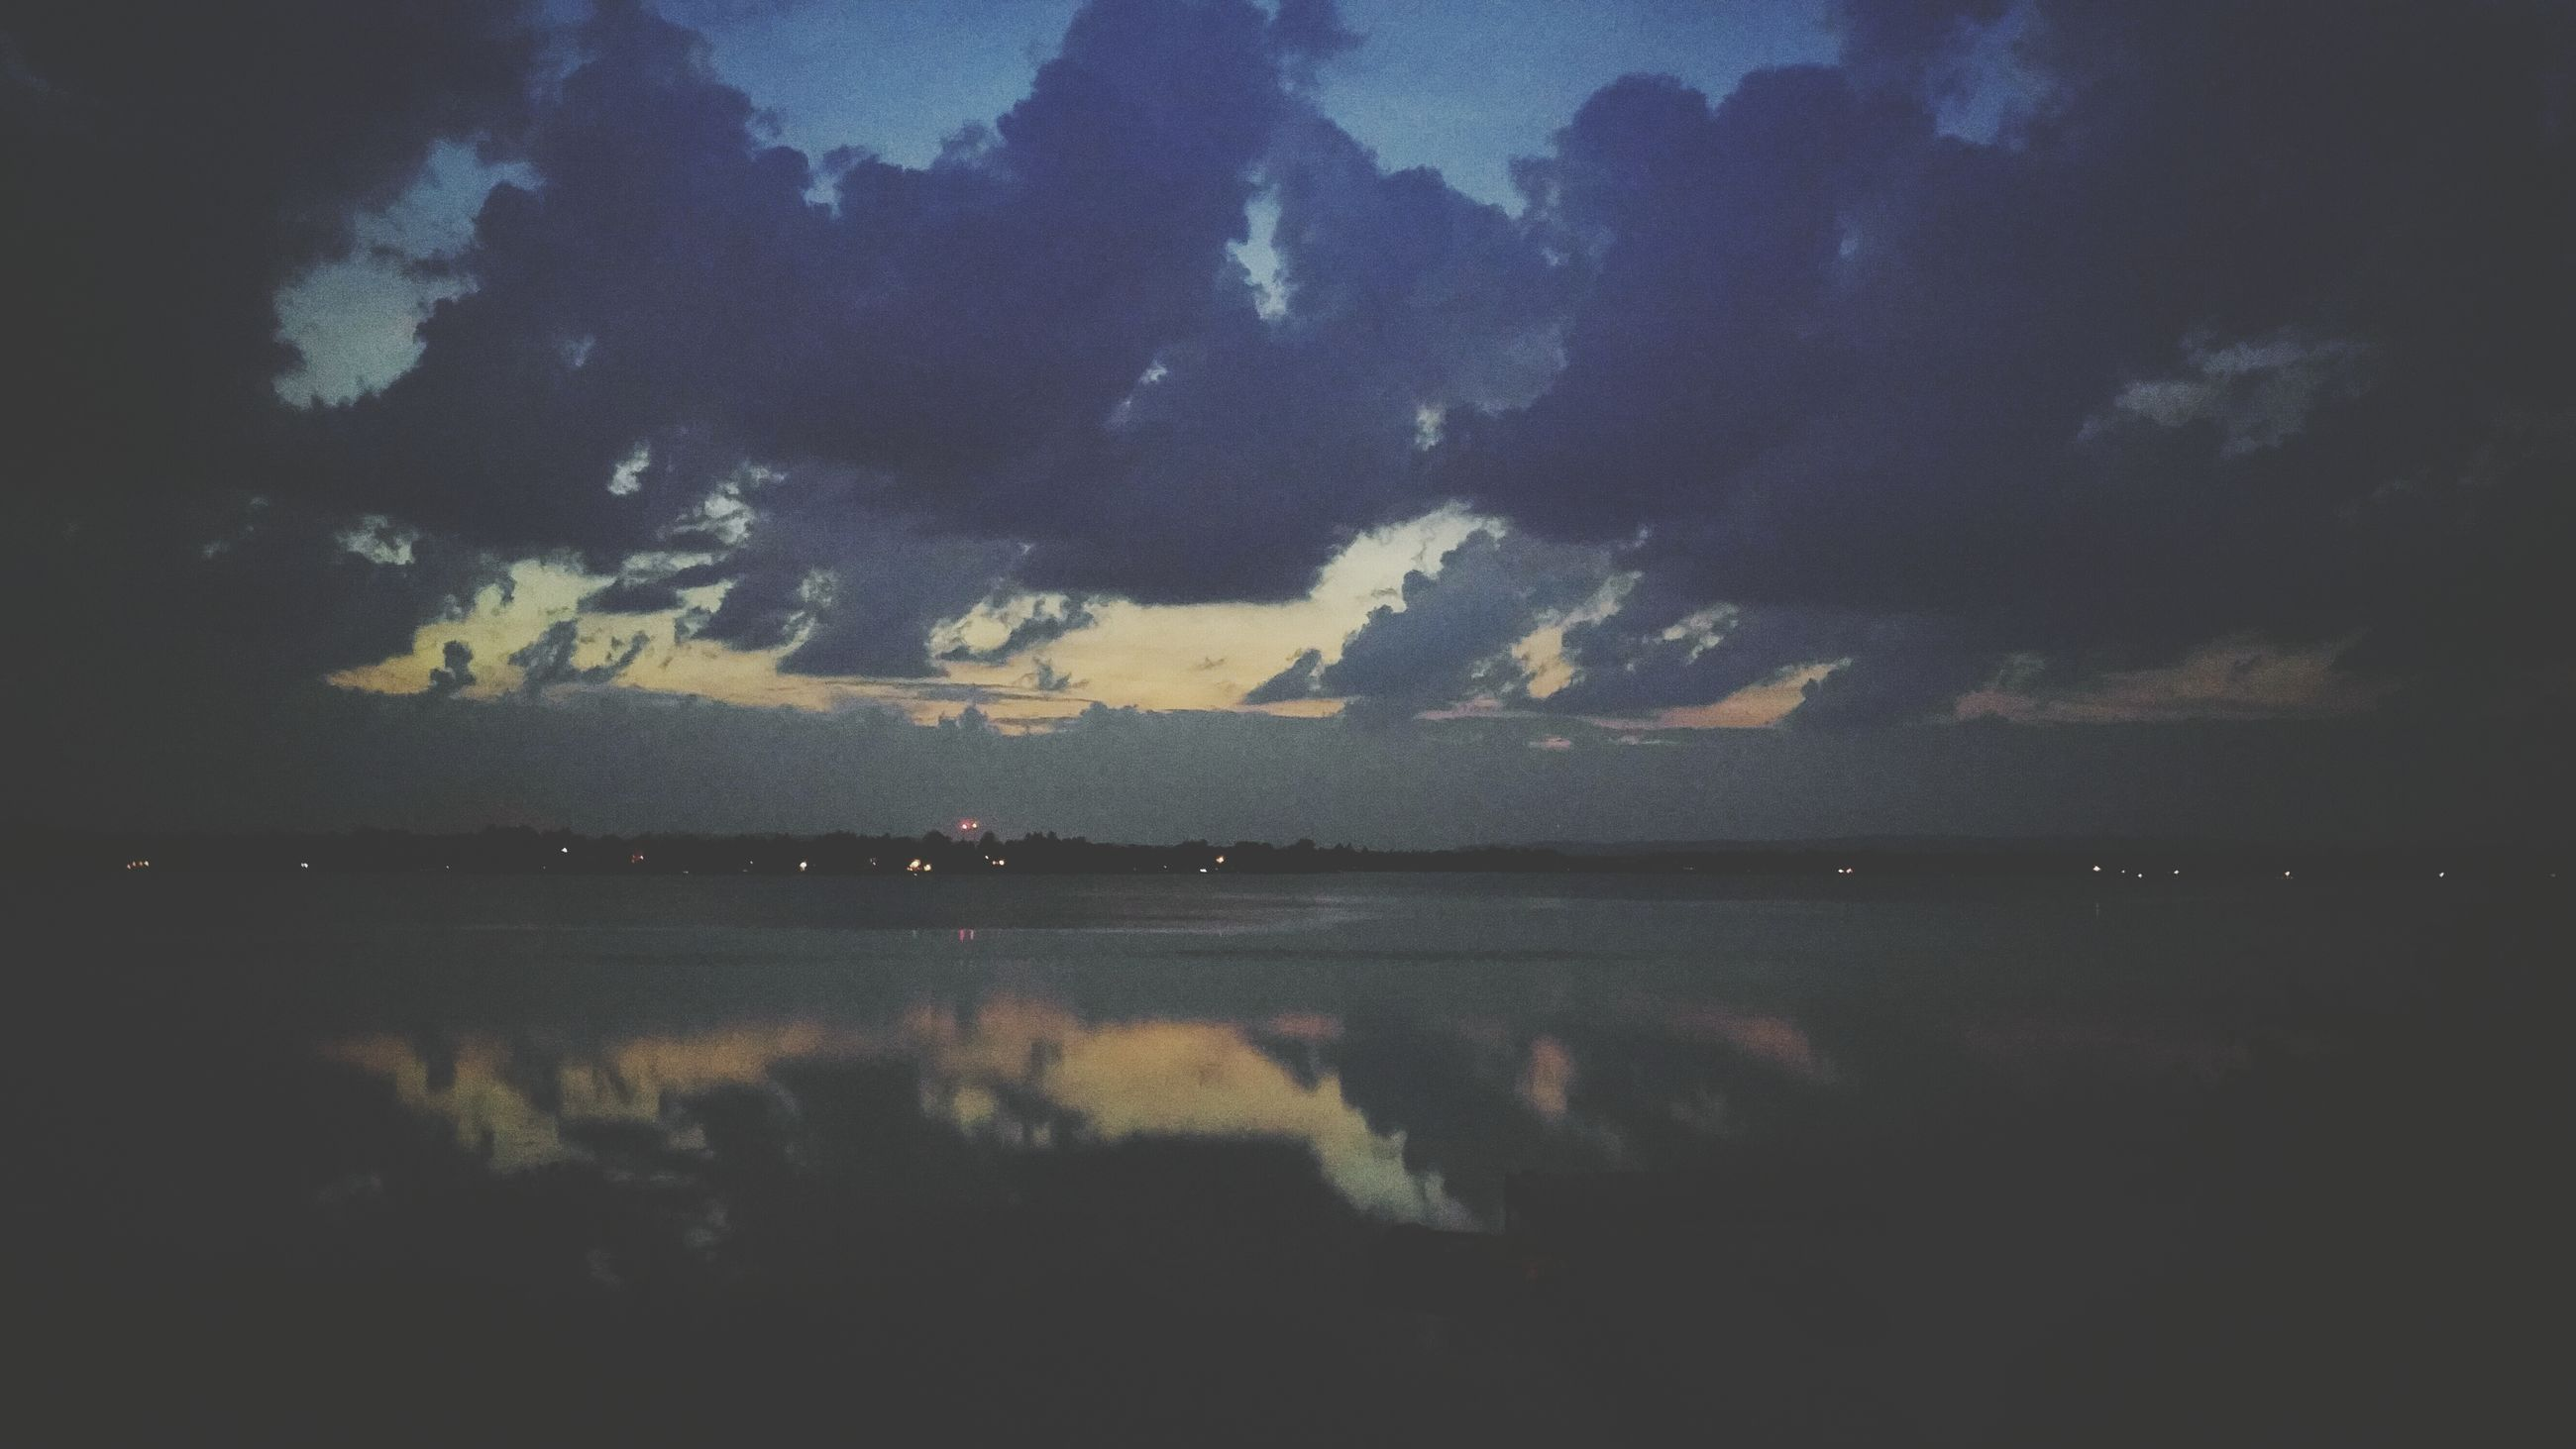 water, sky, sea, tranquility, beauty in nature, scenics, tranquil scene, night, nature, cloud - sky, dusk, idyllic, outdoors, beach, no people, reflection, sunset, shore, lake, waterfront